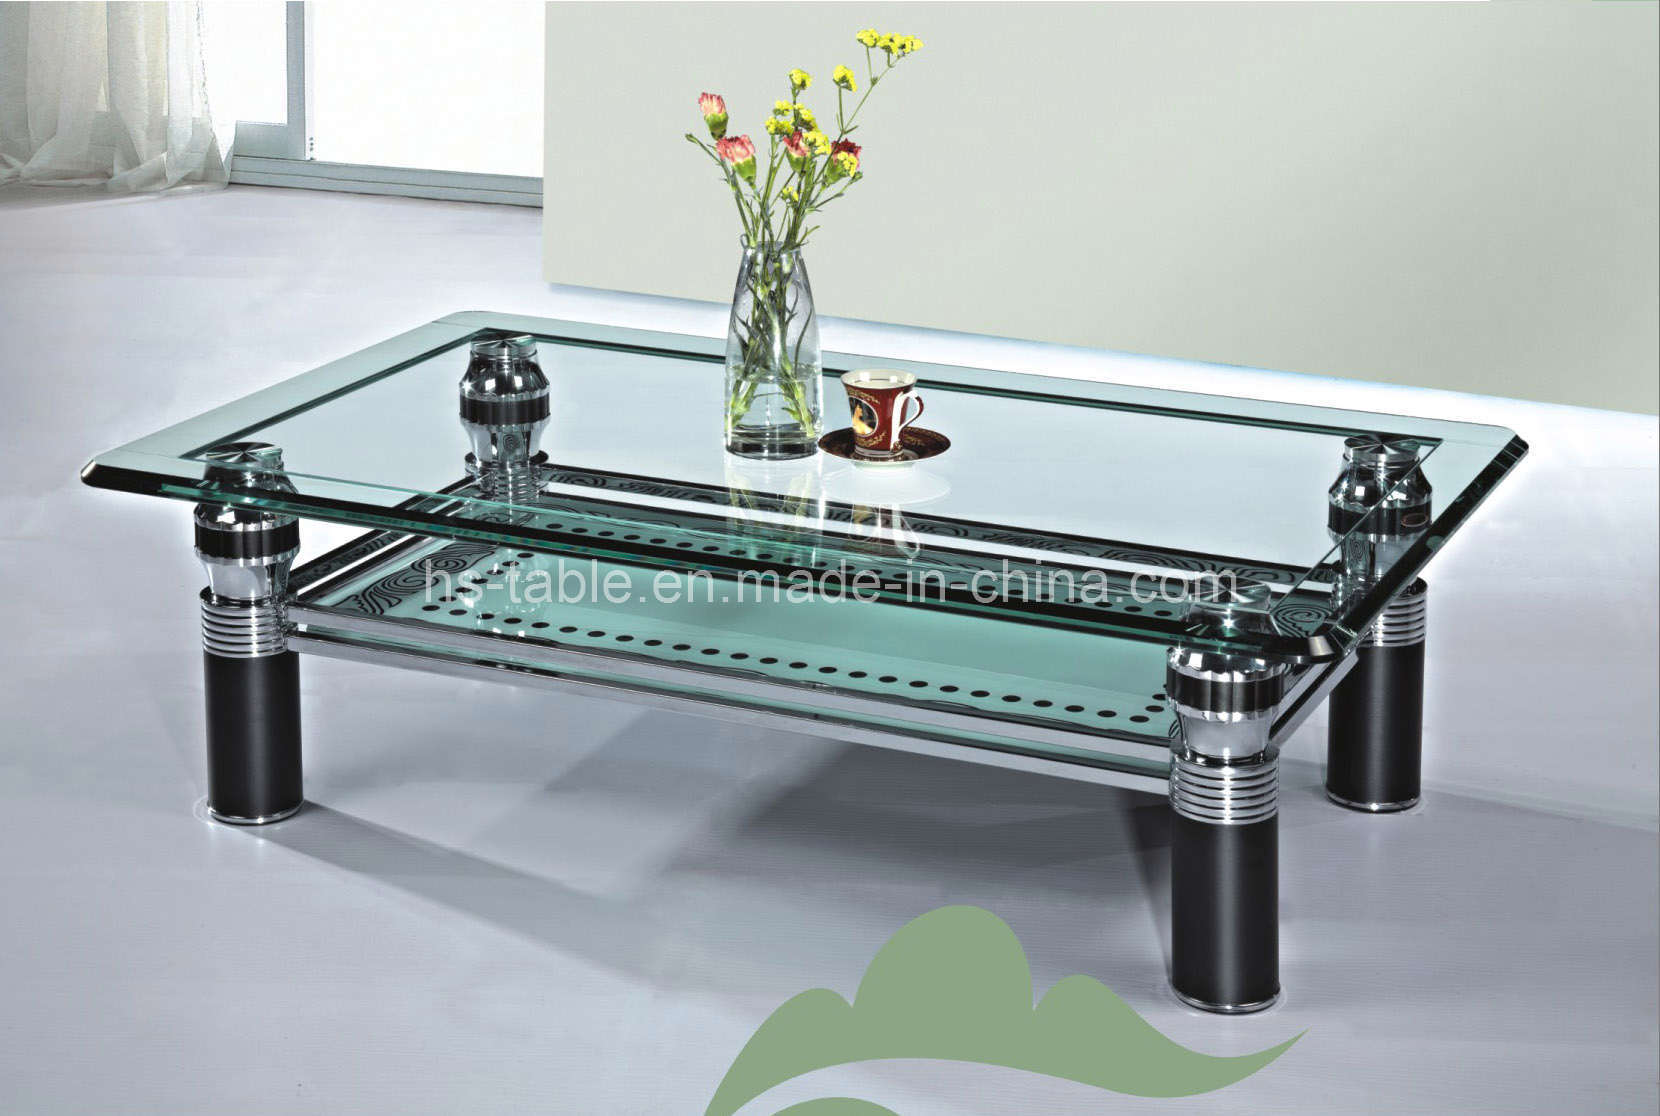 Glass Coffee Table ~ China glass furniture coffee table